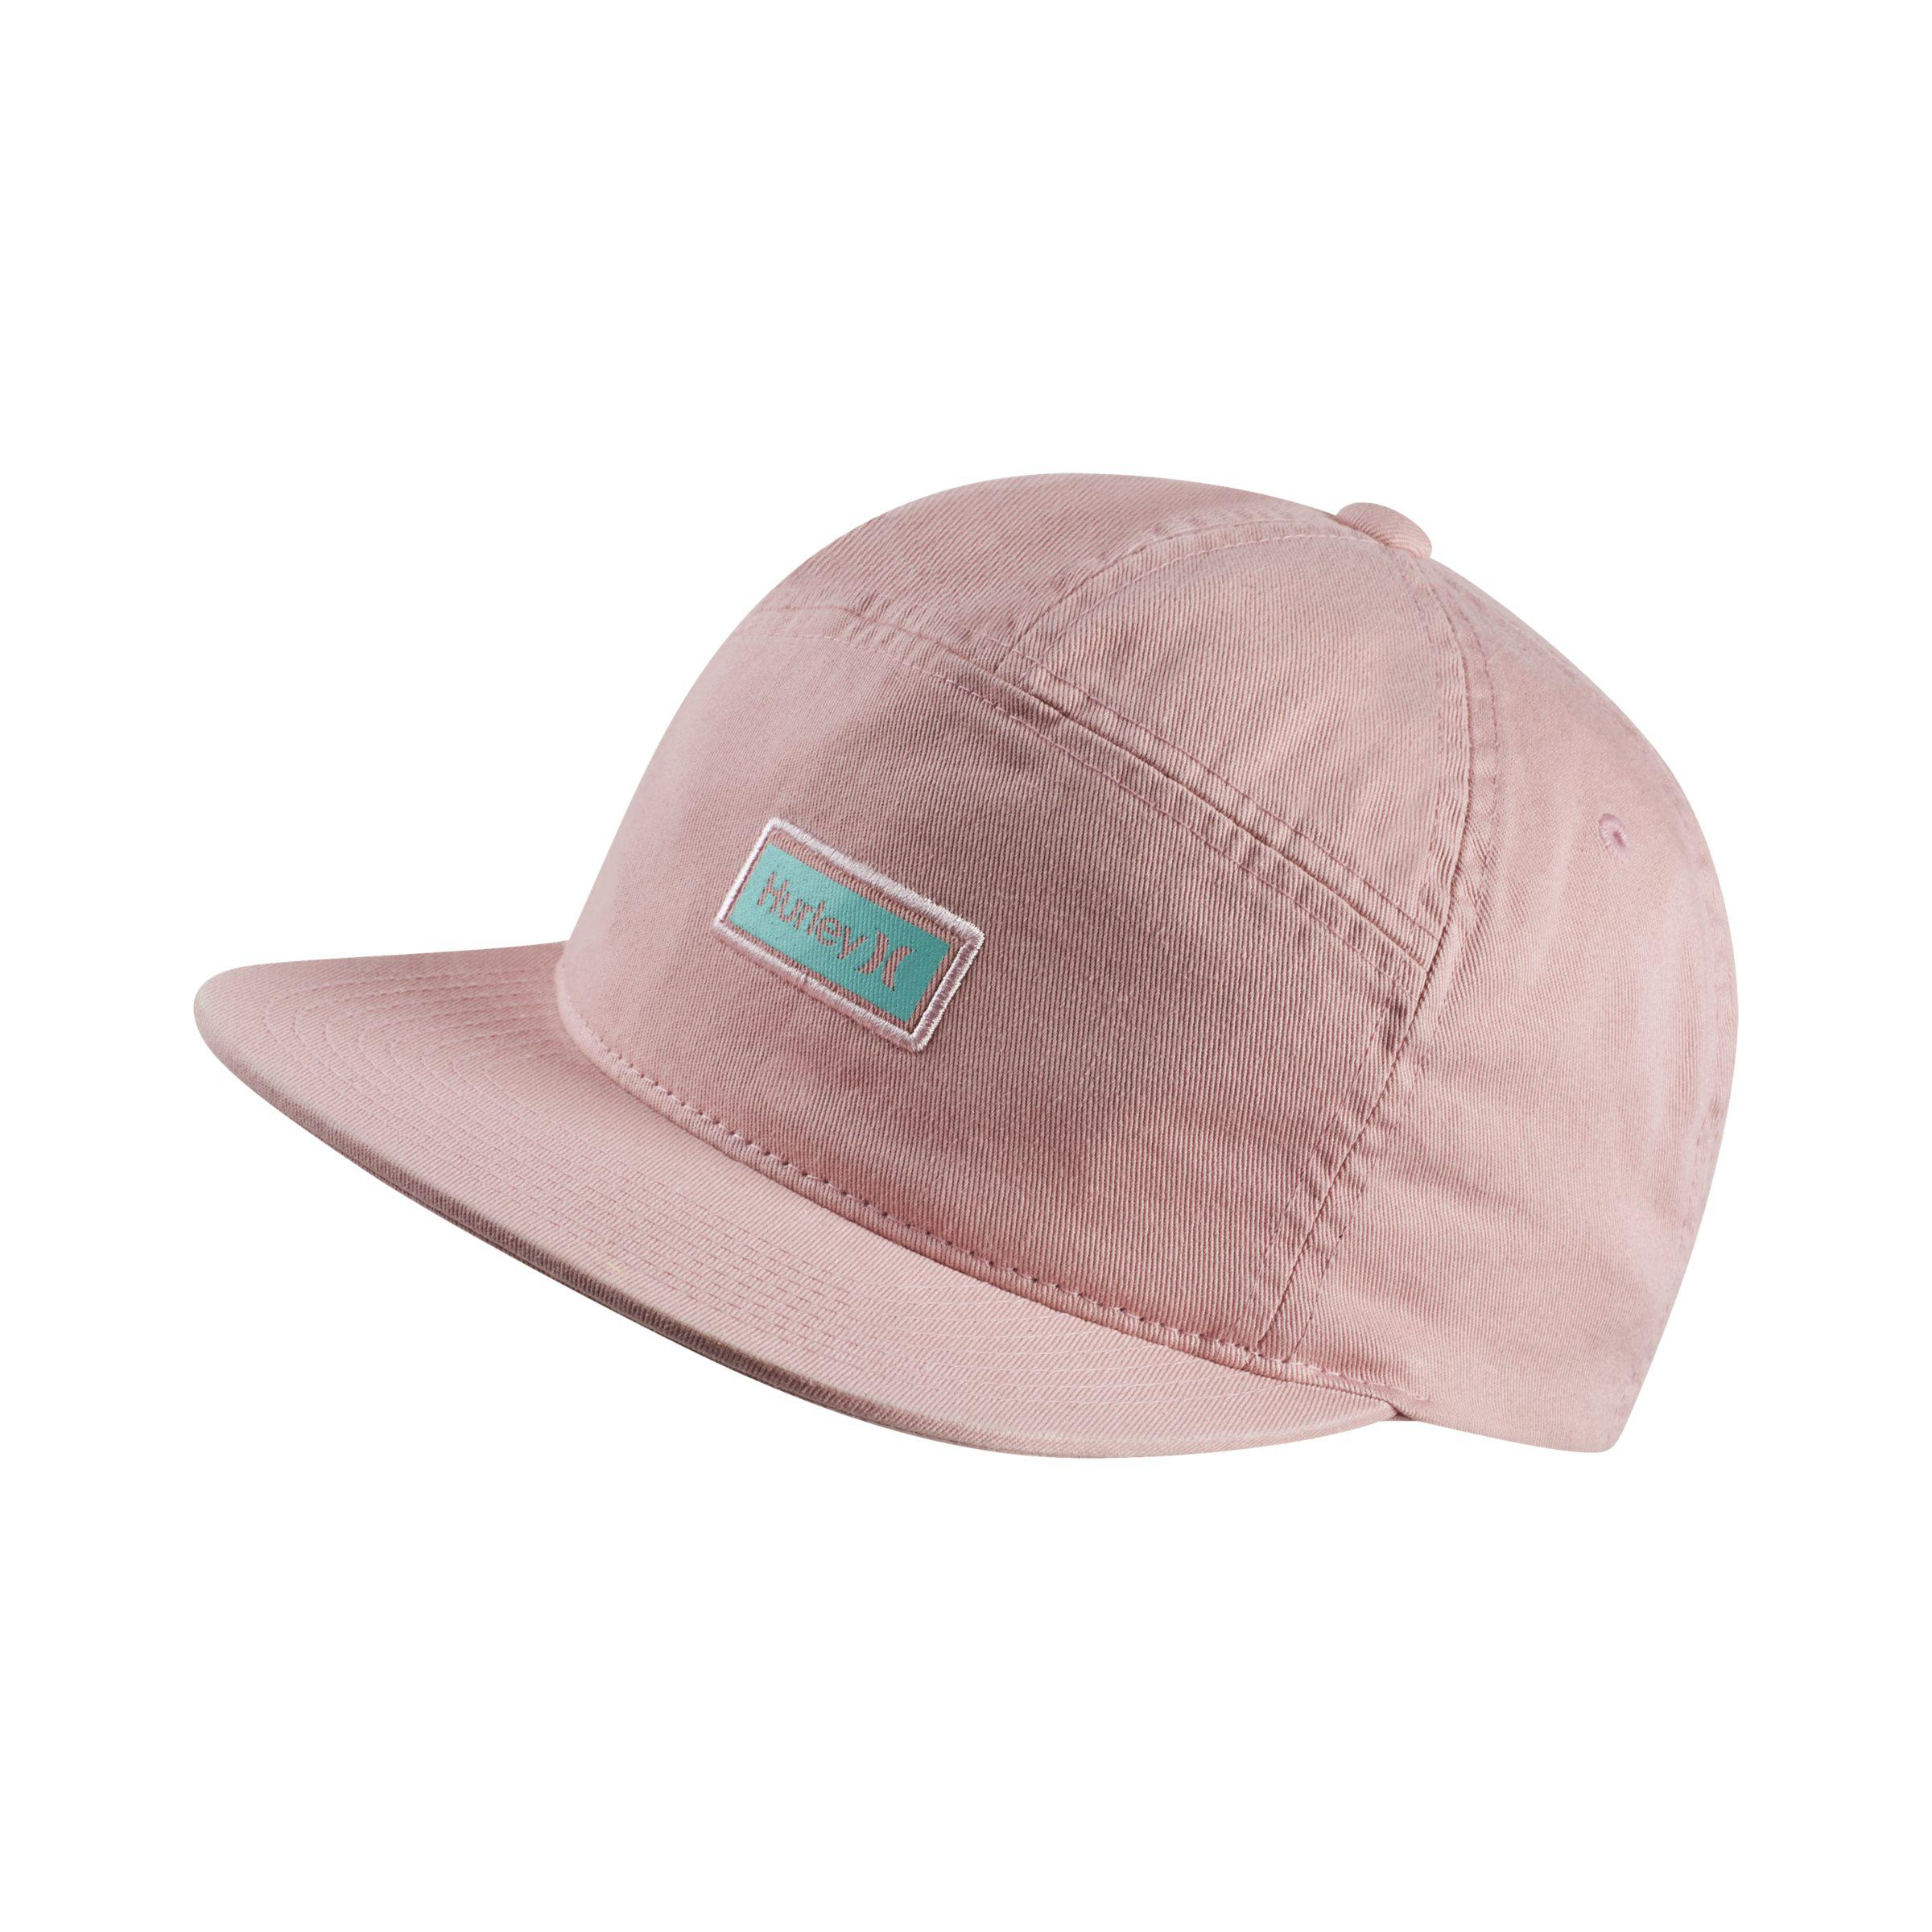 hot sale online 67d00 d2574 canada hurley mens hurley ah9624 nike dri fit cutback hat walmart 4b17f  a30df  sweden nike. womens pink hurley octane adjustable hat 2a577 64698